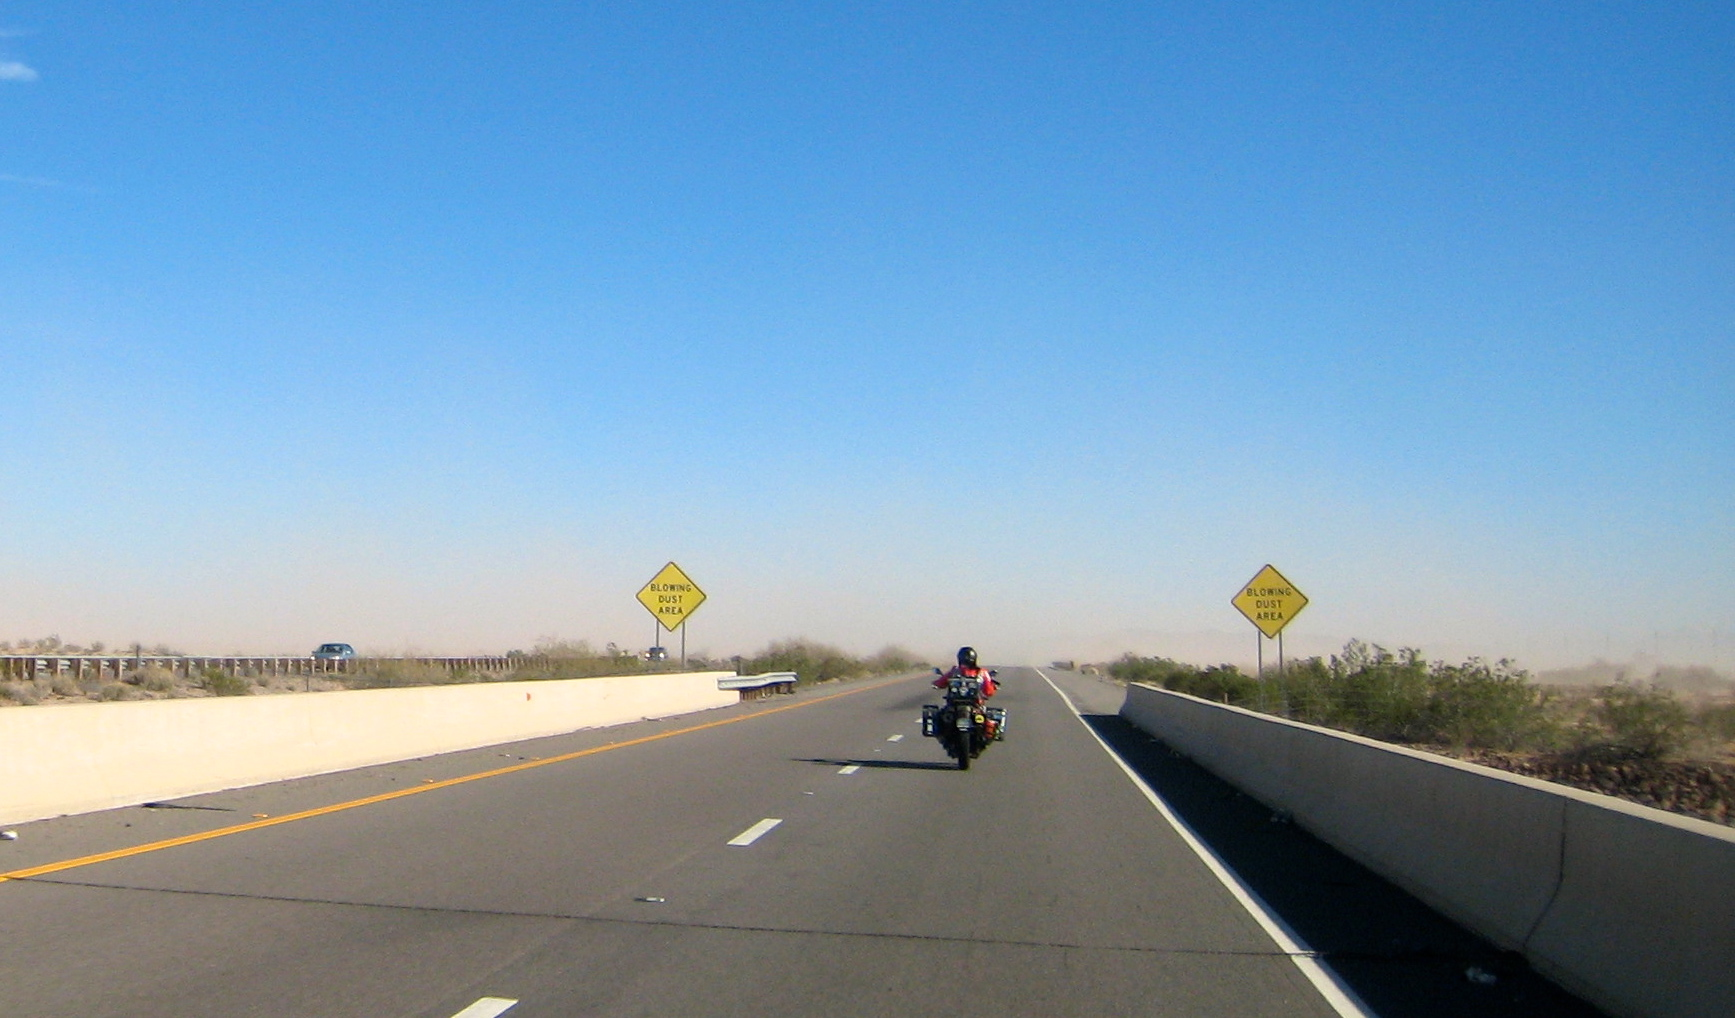 It was very windy, and dusty traveling into Tucson today!